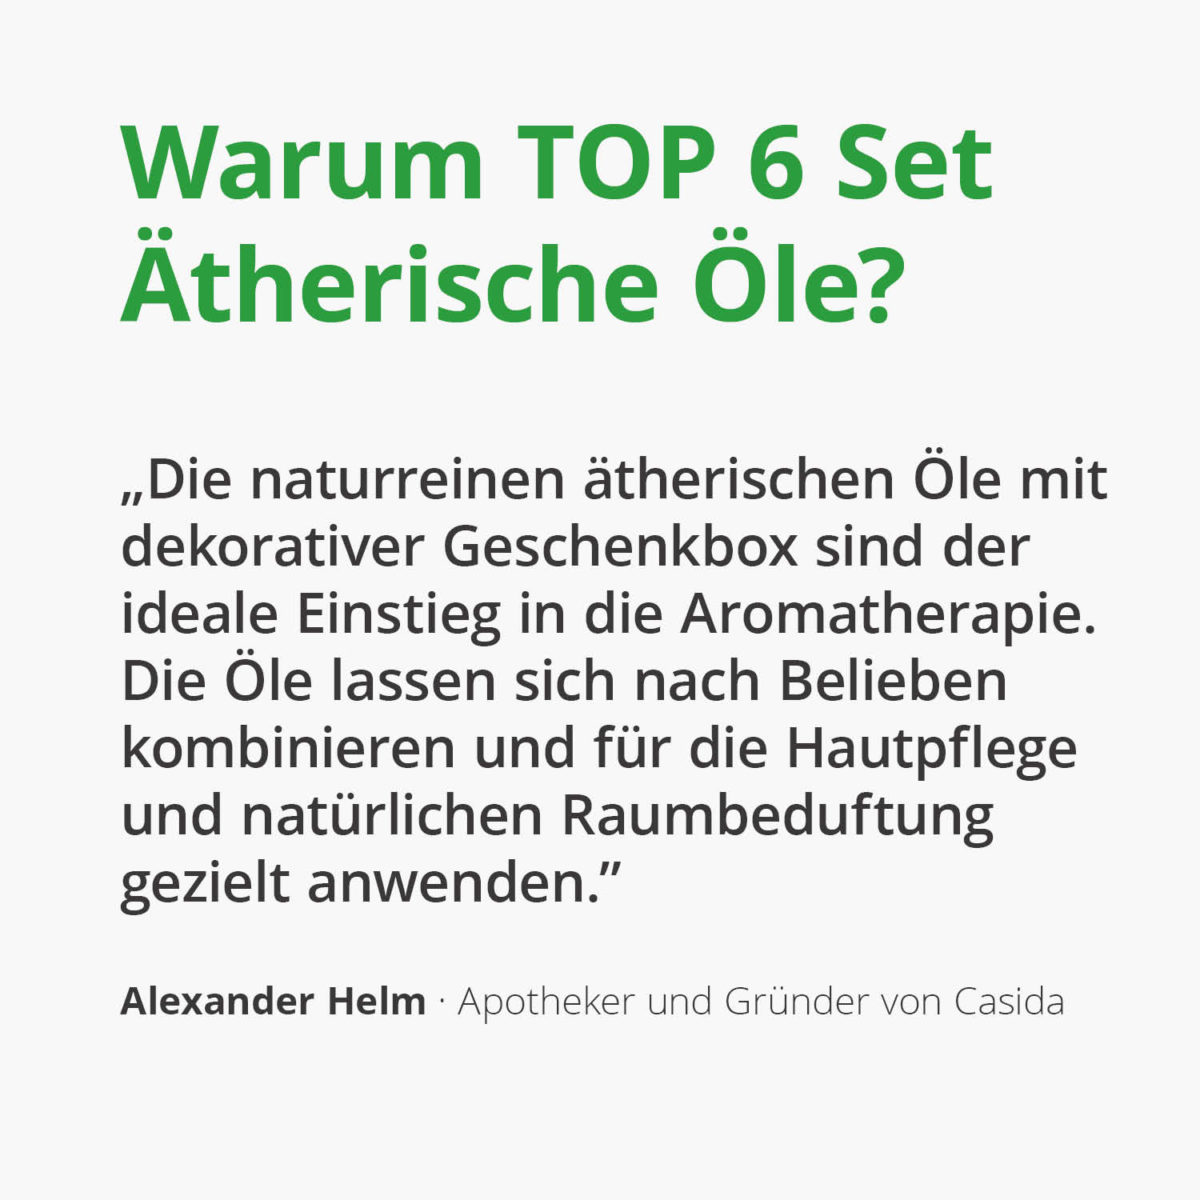 Casida TOP 6 essential oil set (each 10 ml) 16247292 Aromatherapie Aromapflege Lemongras Pfefferminz Lavendel Orange Rosmarin Teebaum2